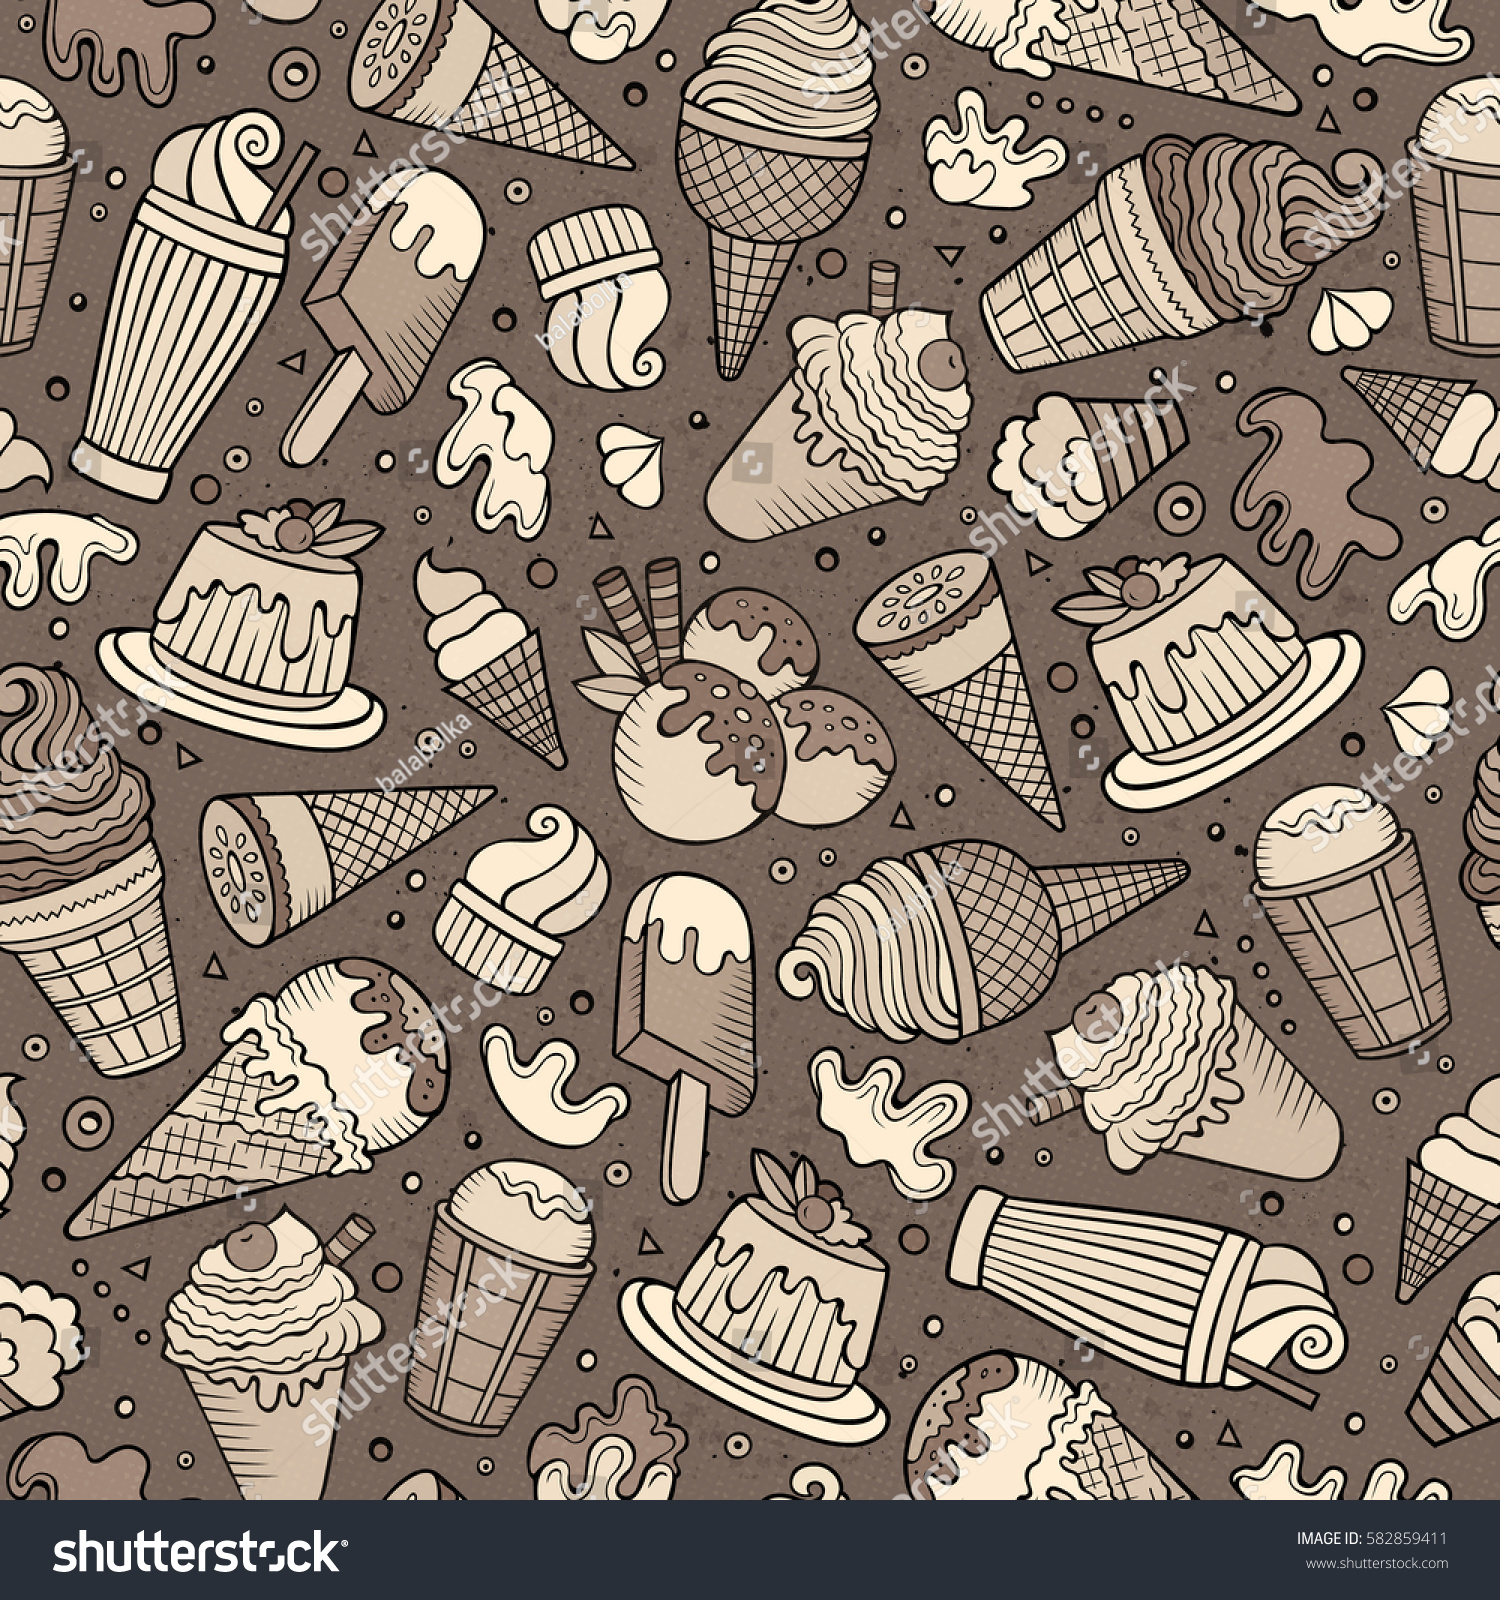 Seamless Pattern With Hand Drawn Watercolor Ice Cream: Cartoon Handdrawn Ice Cream Doodles Seamless Stock Vector